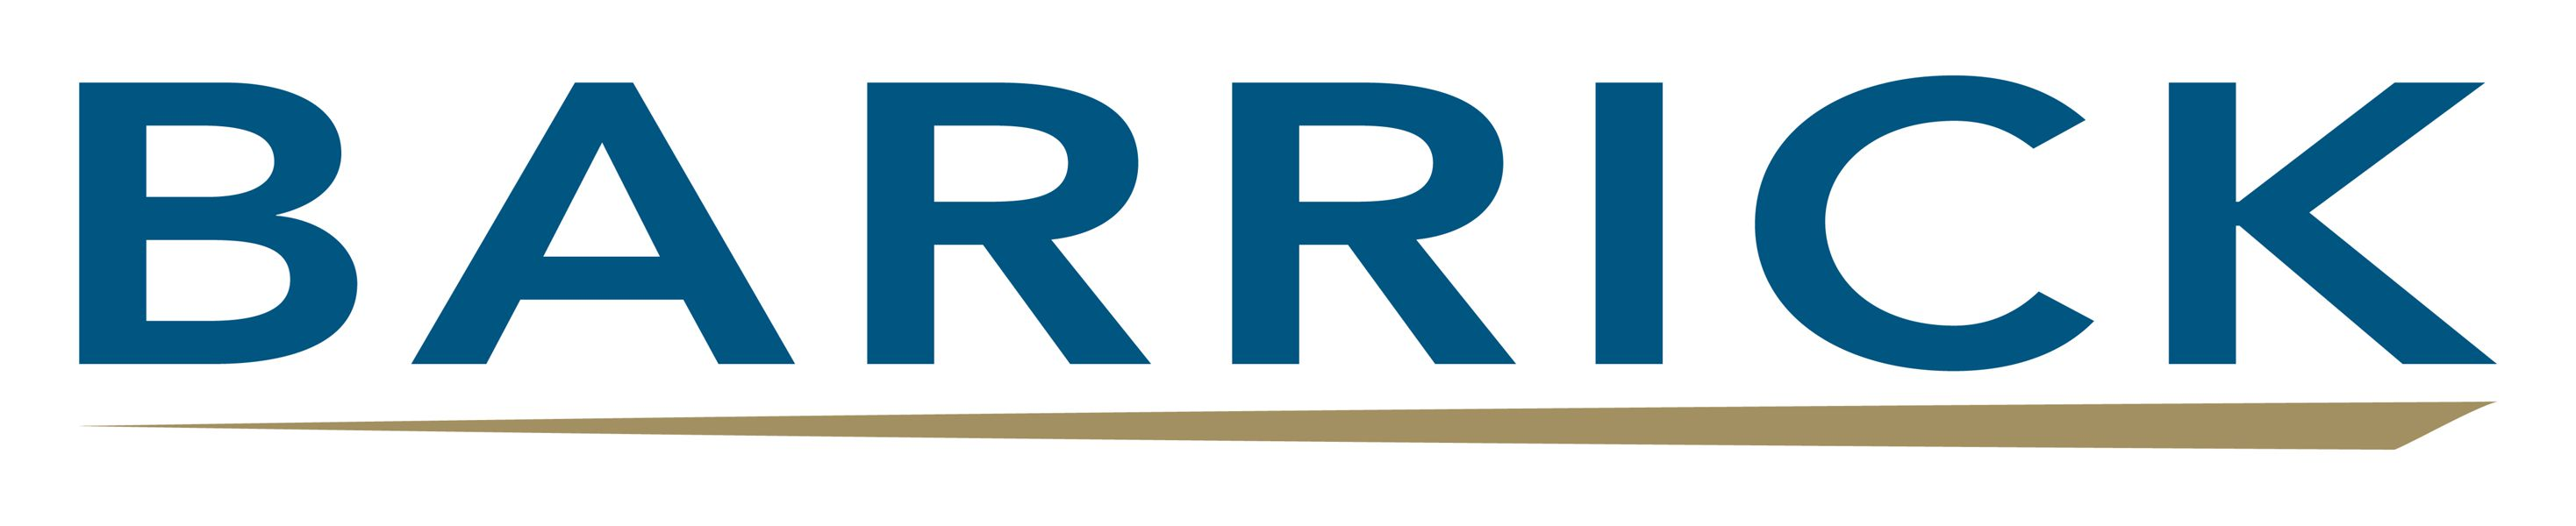 Barrick Increases Dividend 40% for Q4 2019